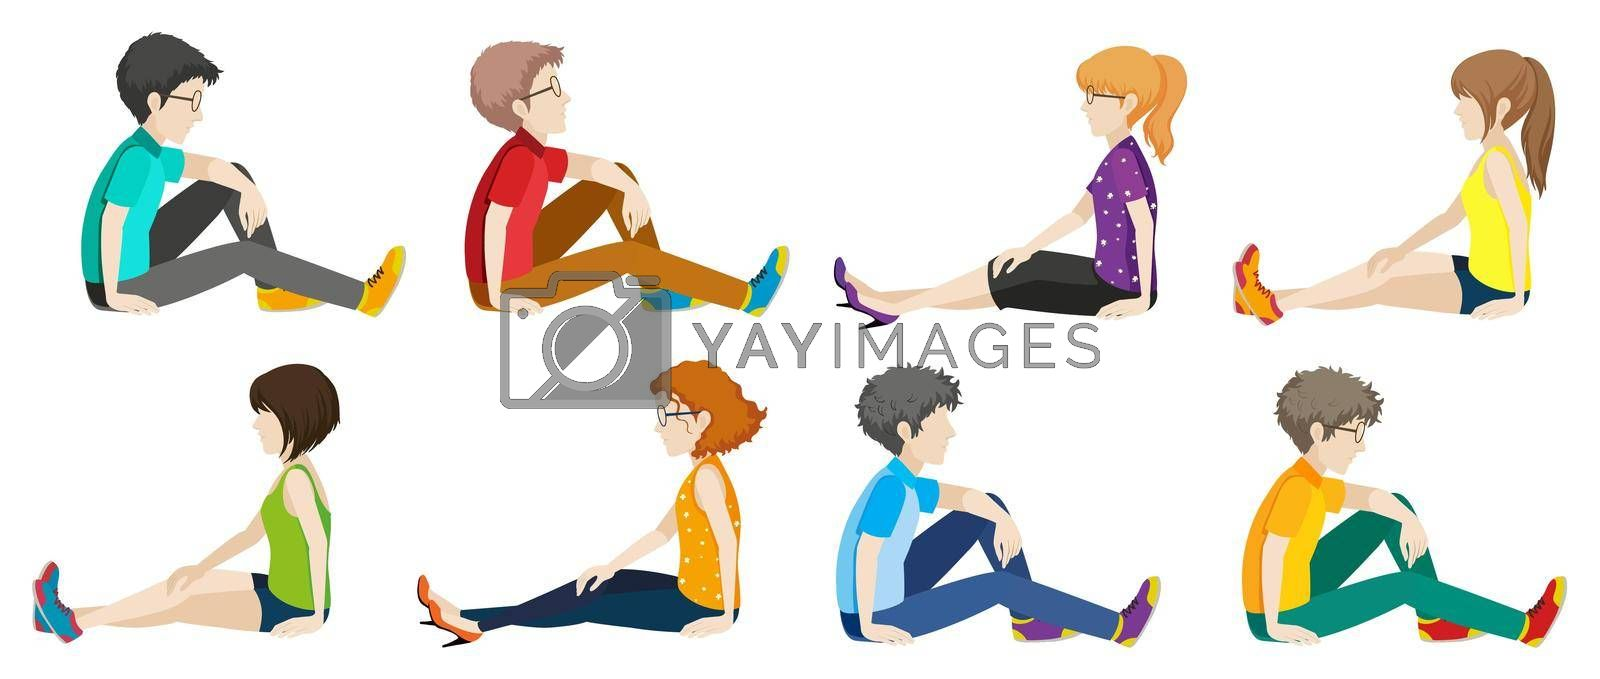 Royalty free image of People sitting by iimages